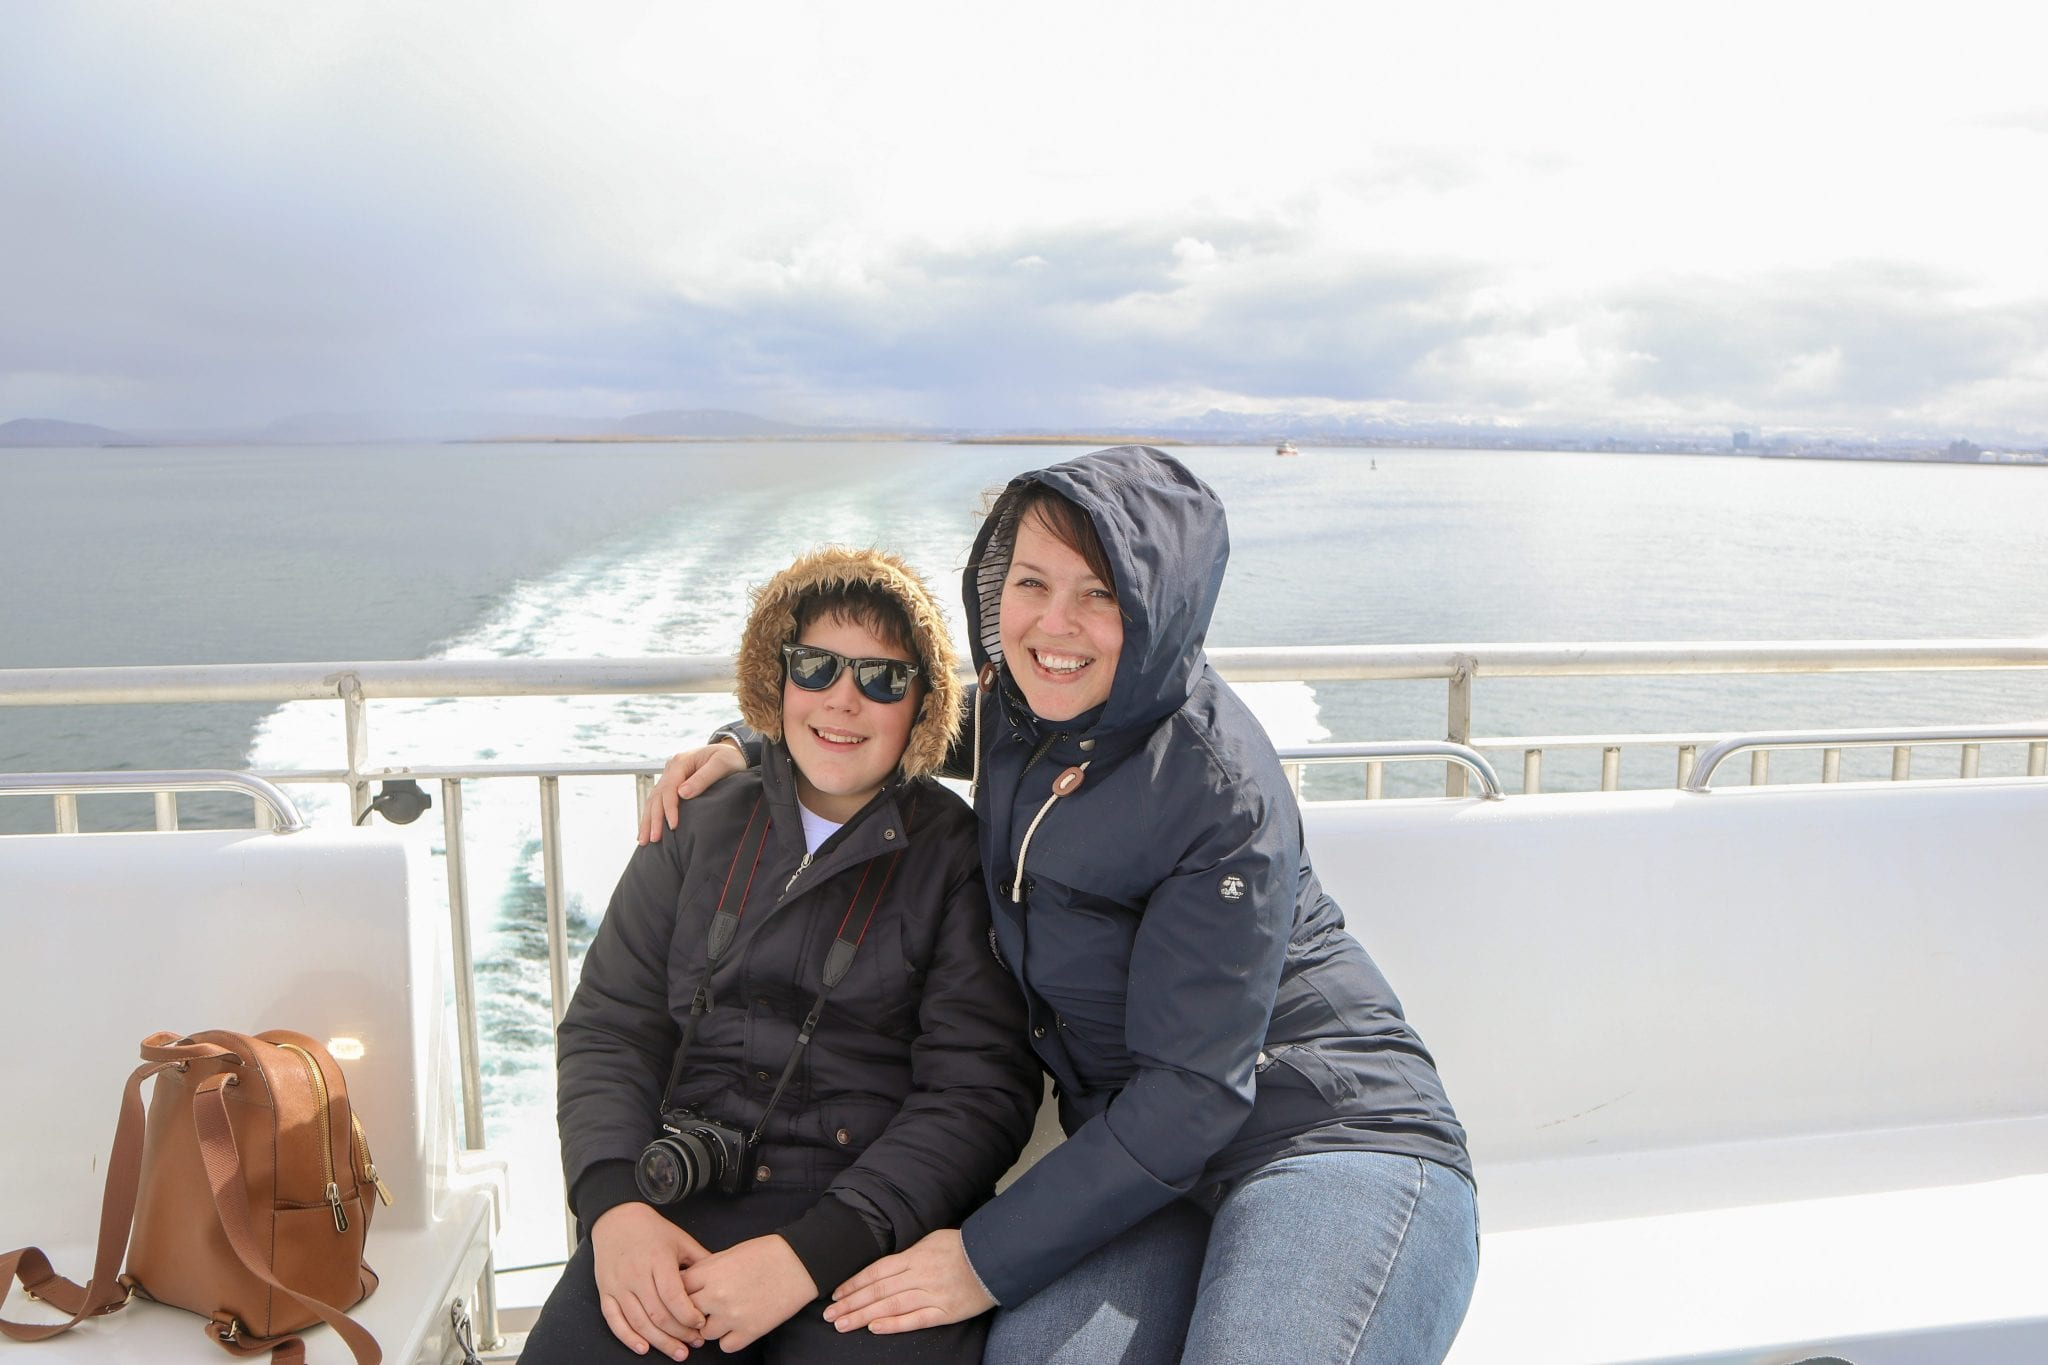 They also explained that although we are obviously there to see whales, to have a minimal impact on the whale's habitat they wouldn't be using any equipment to find them. They rely purely on eyesight, binoculars and in-depth knowledge of the whales' habits. We enjoyed views of distant, snowy mountains capped with low clouds and surrounded with lush, green rolling hills. Iceland is beautiful from every angle and I clearly remember thinking'this is just perfect'.